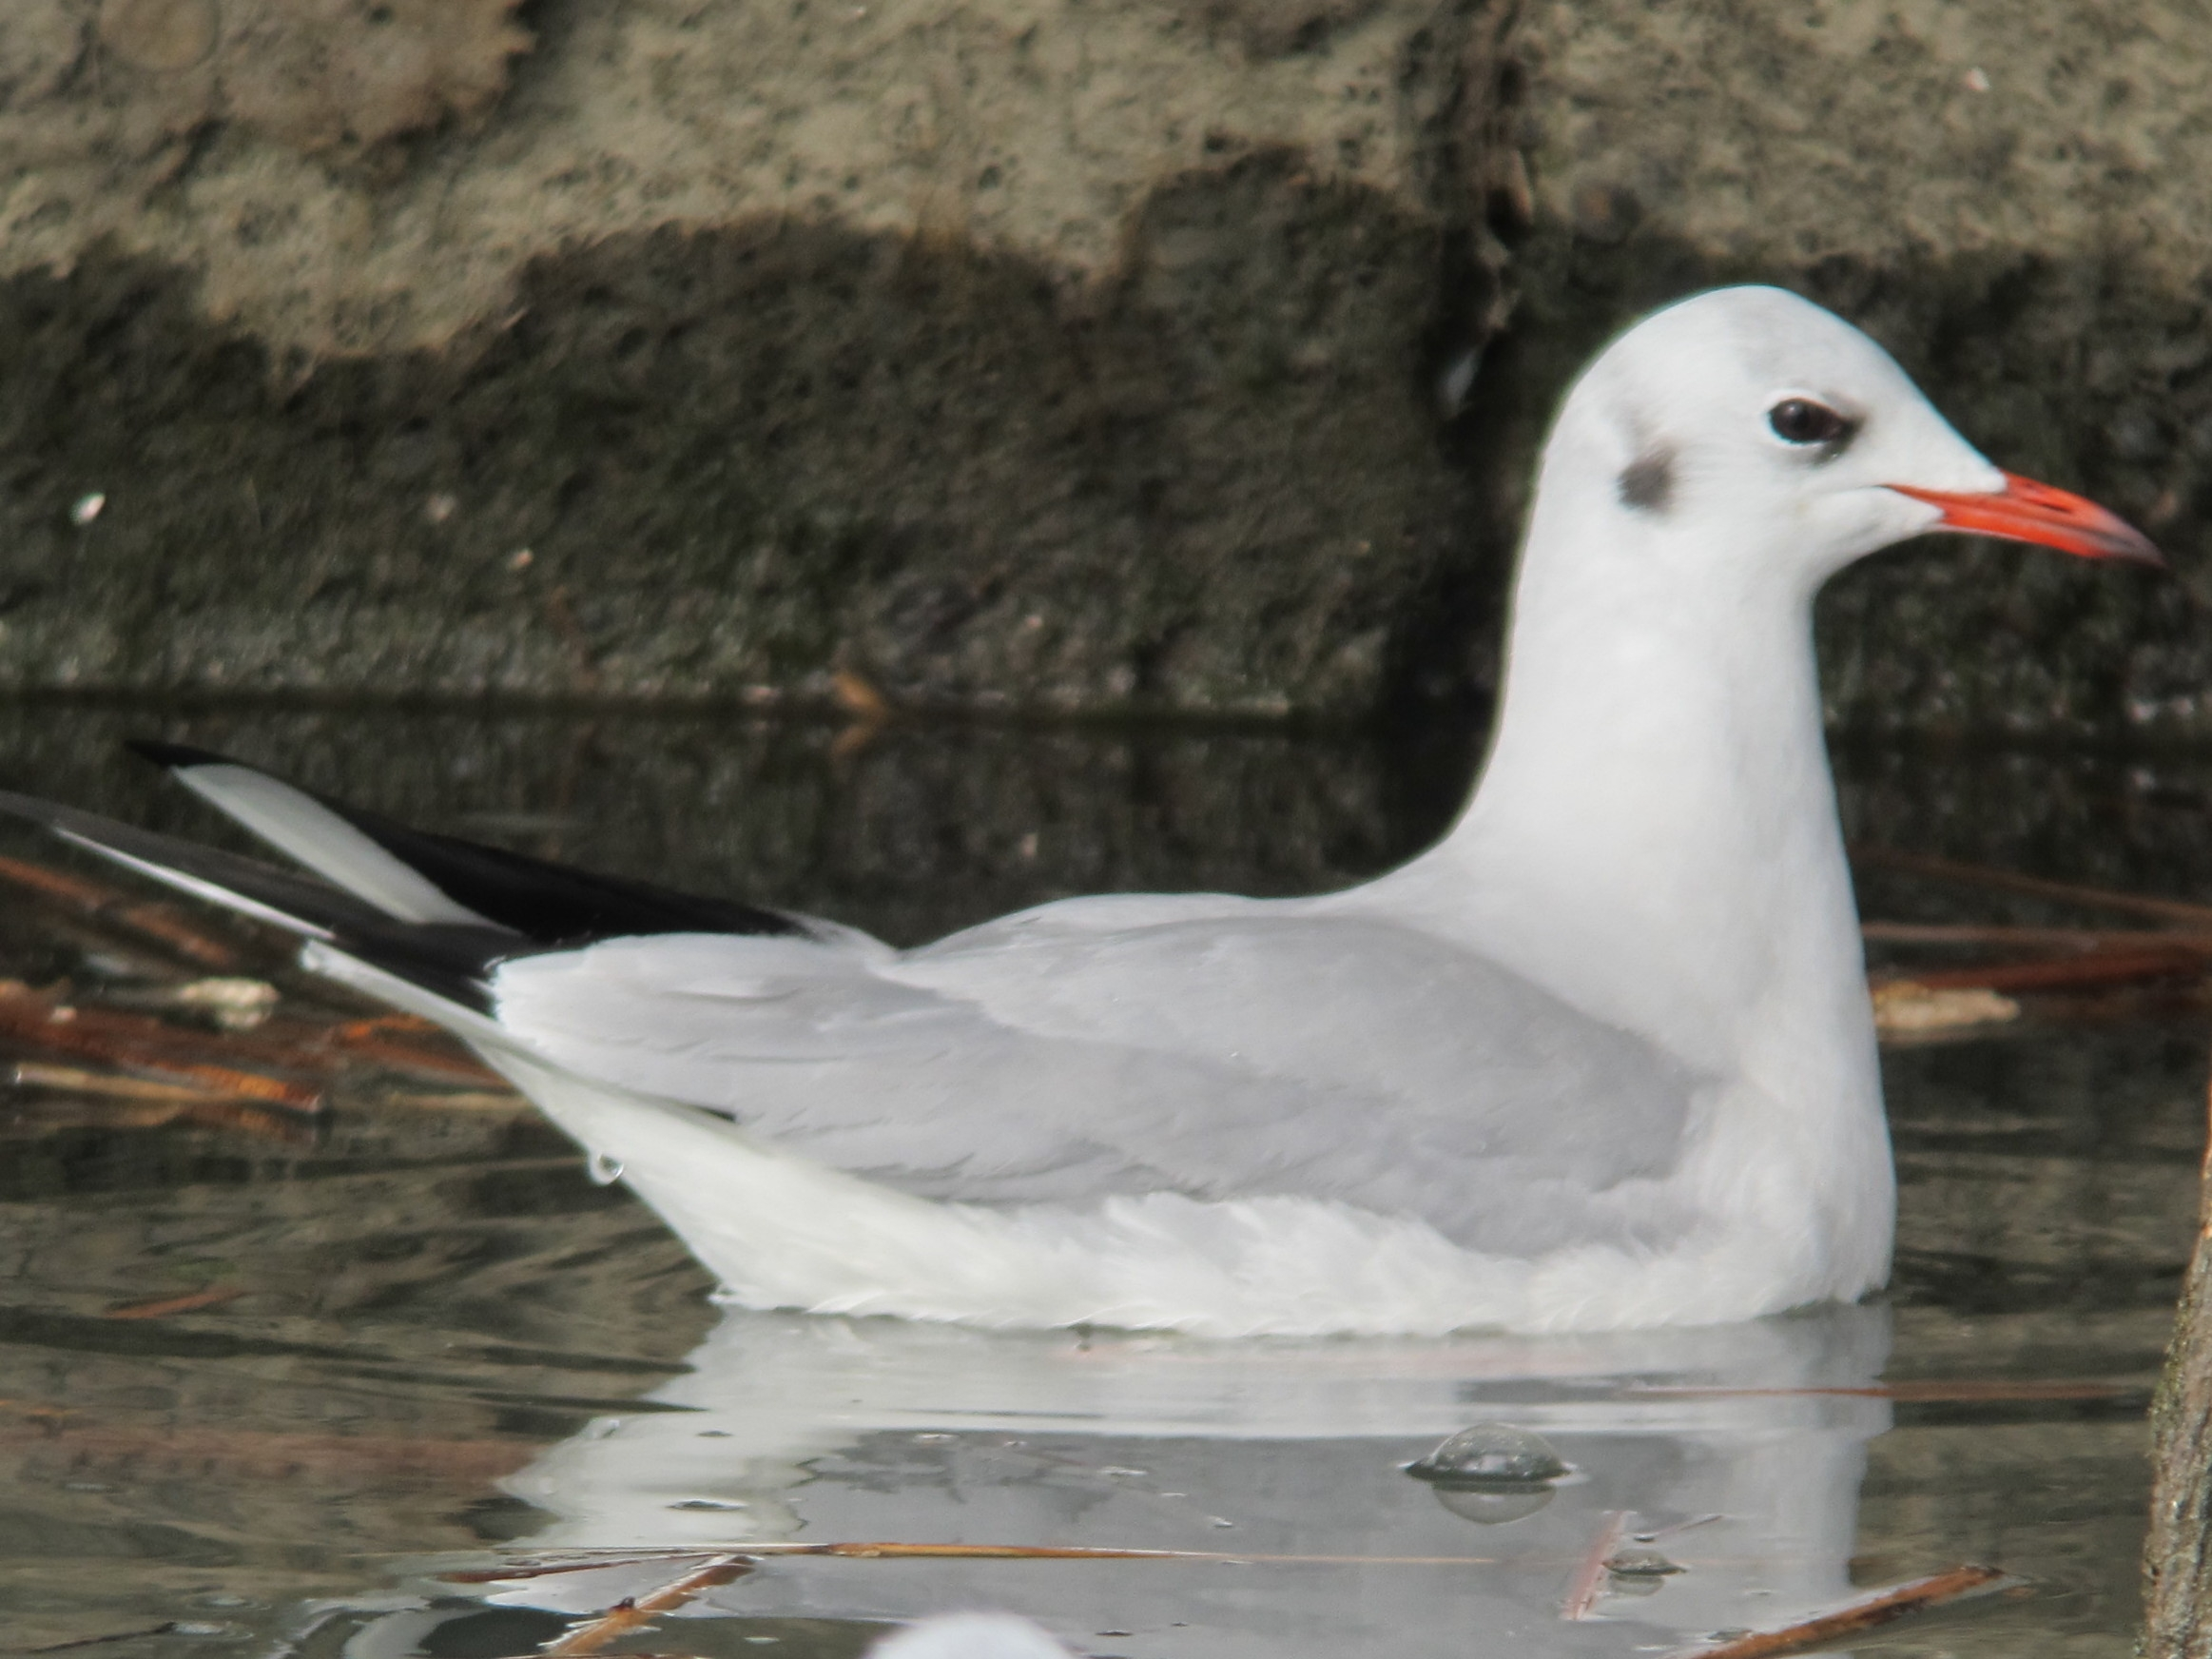 Black-headed Gull taken by Marcie Jacklin in February 2012 at Richs Marina in Buffalo